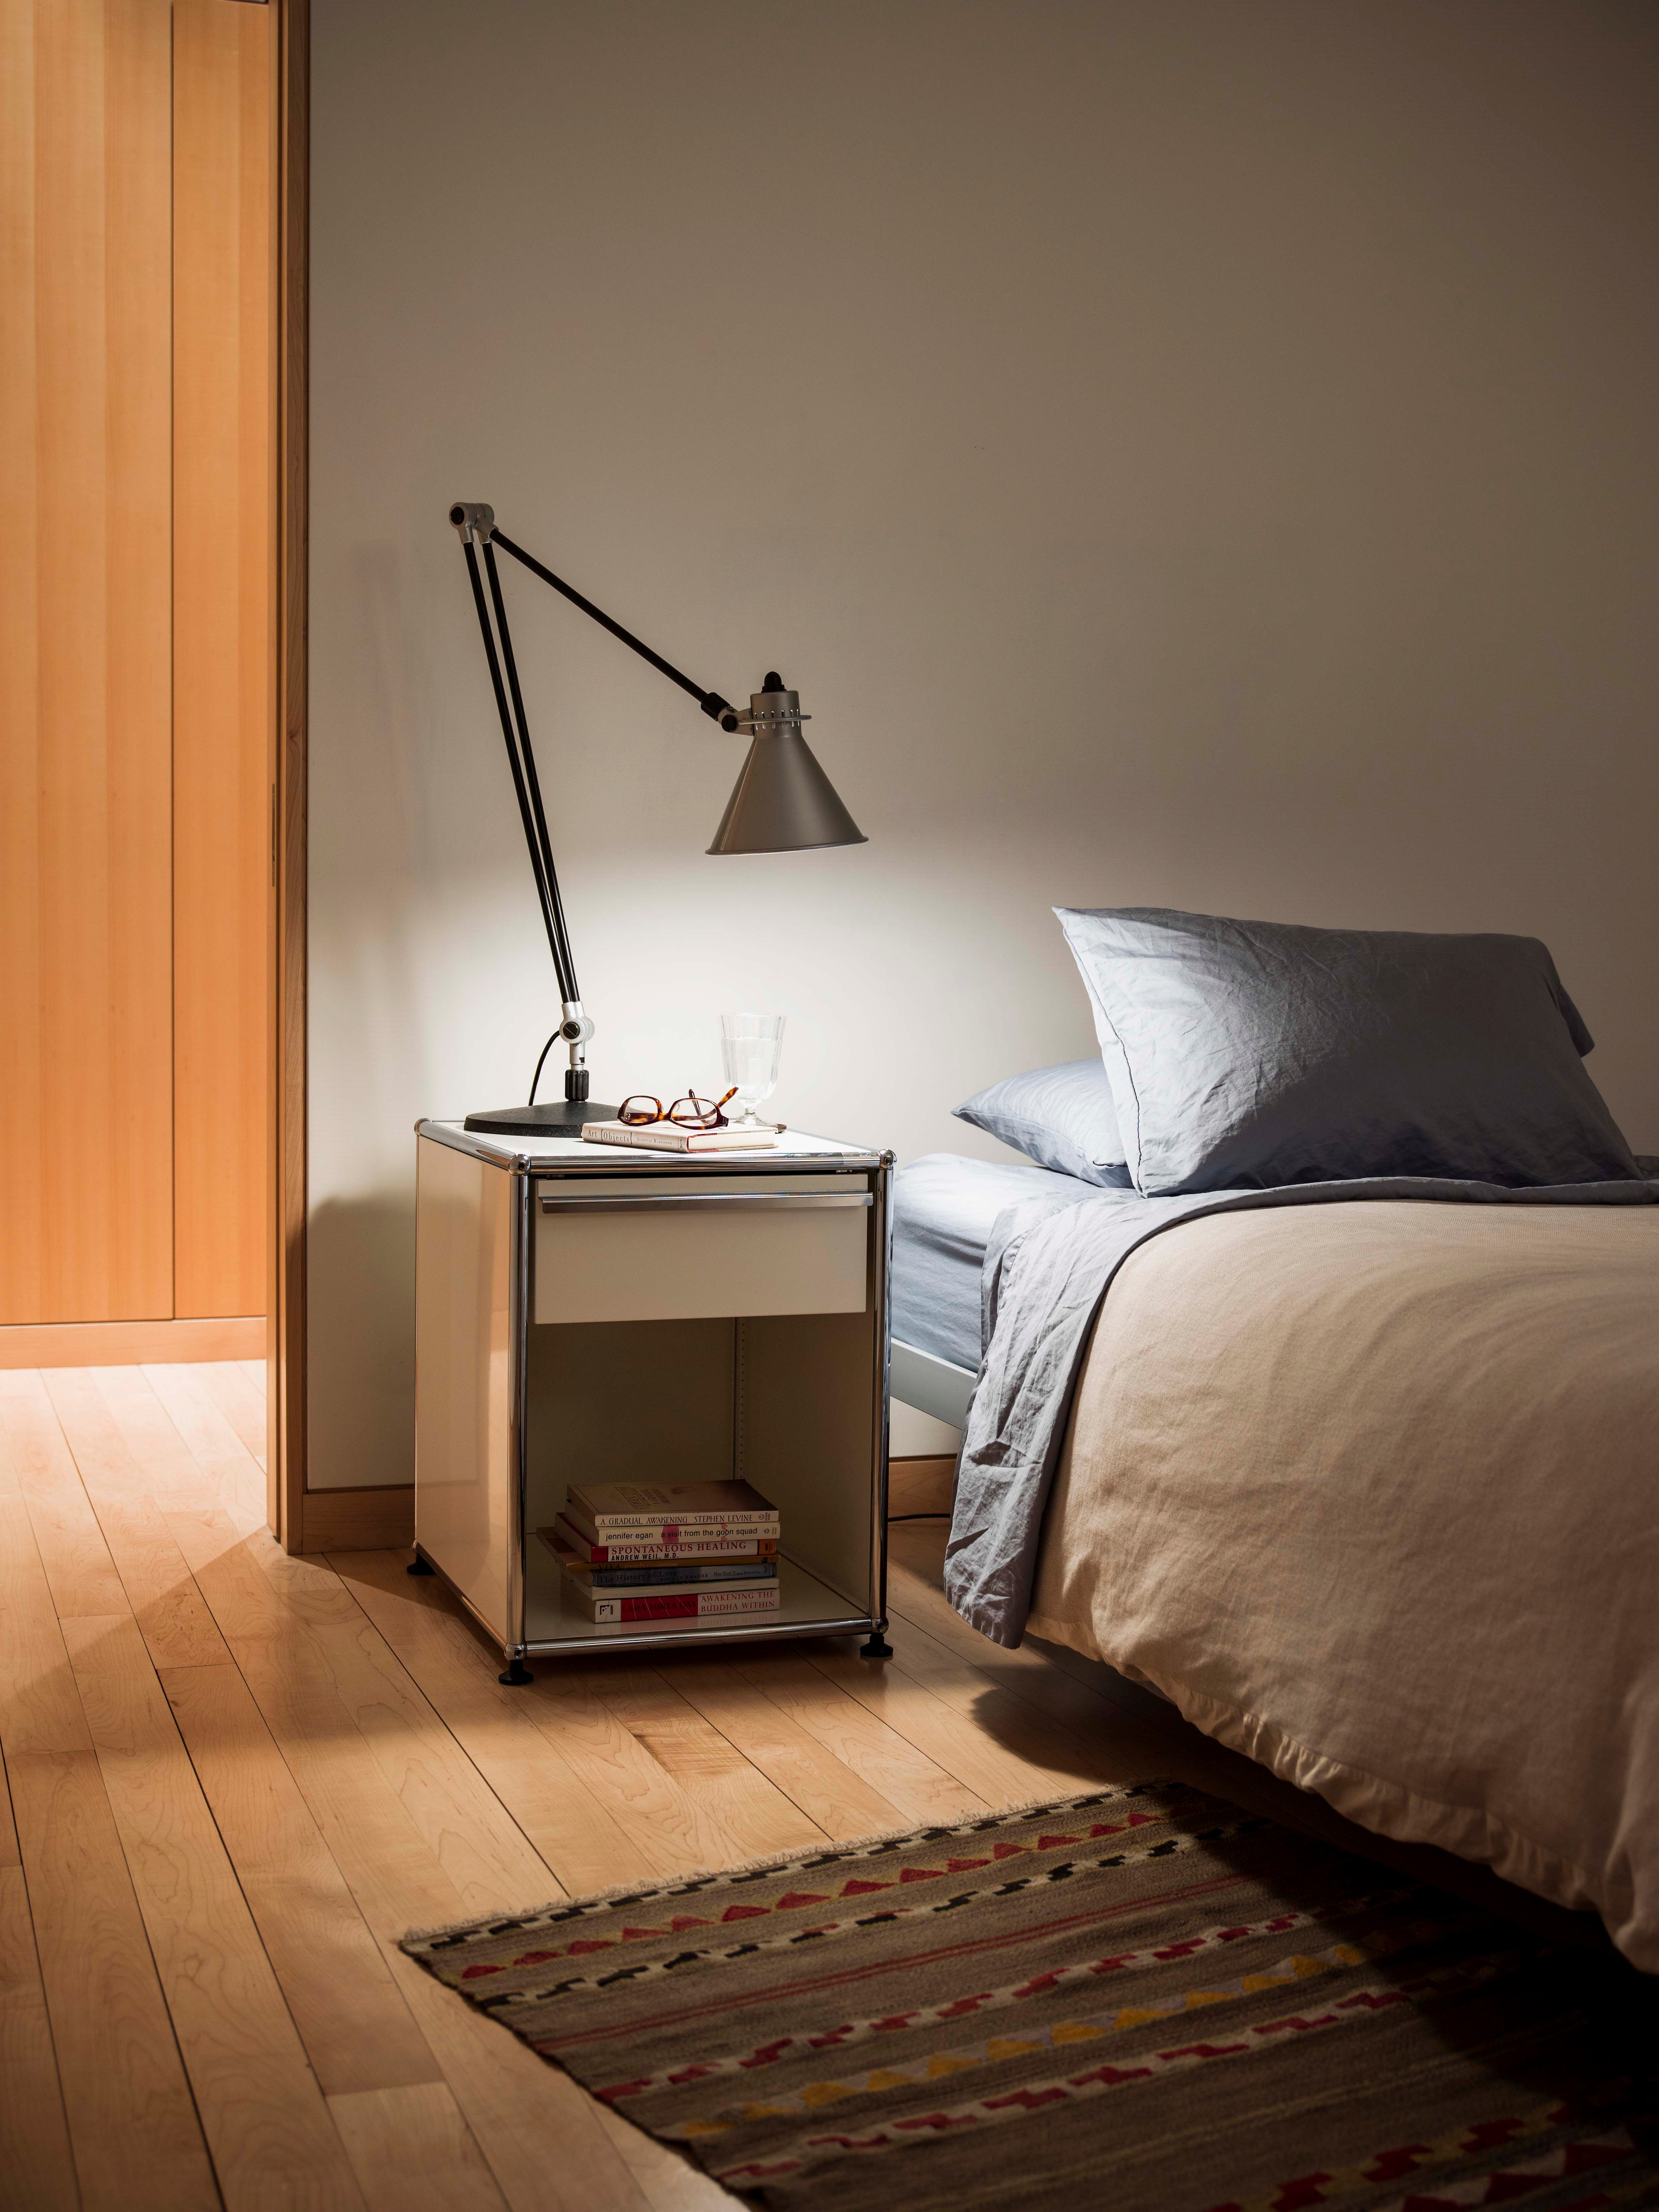 white USM Haller bedside table with lamp and books